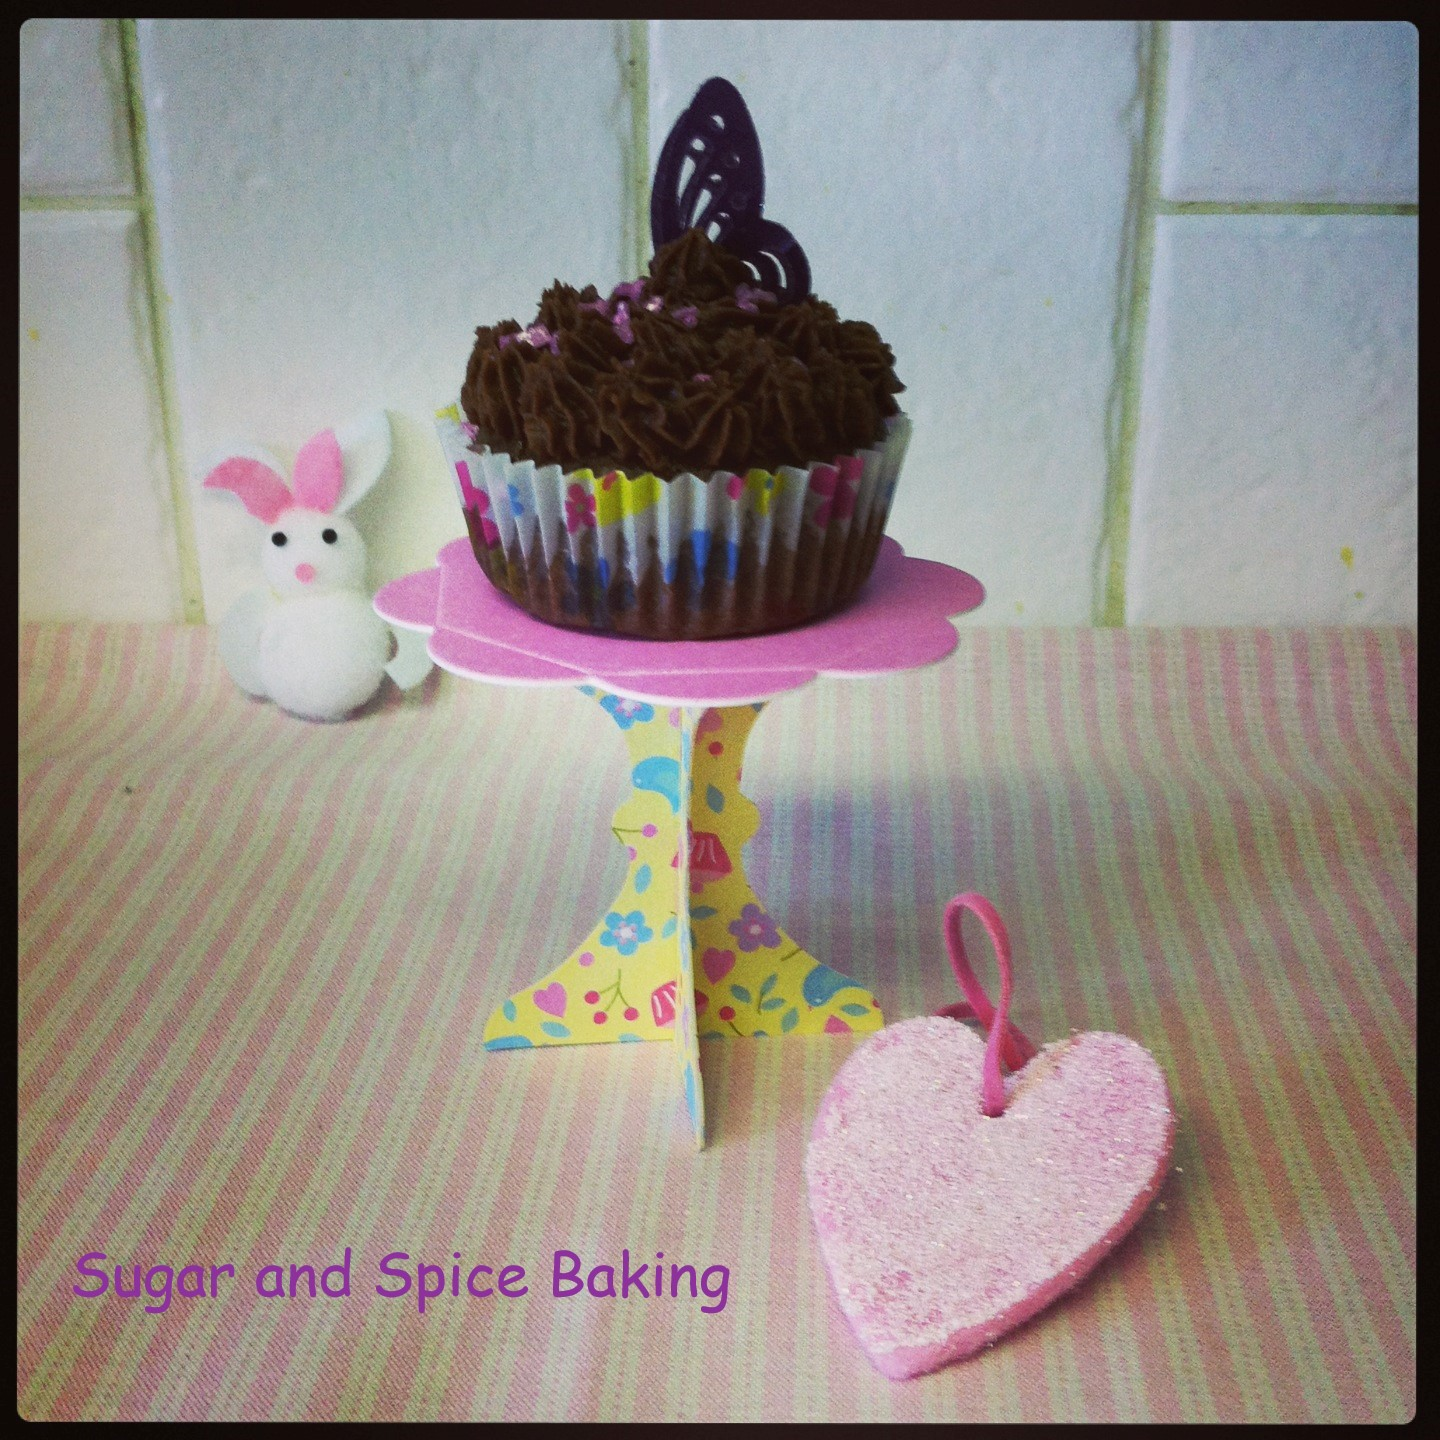 Frosting | Sugar and Spice Baking